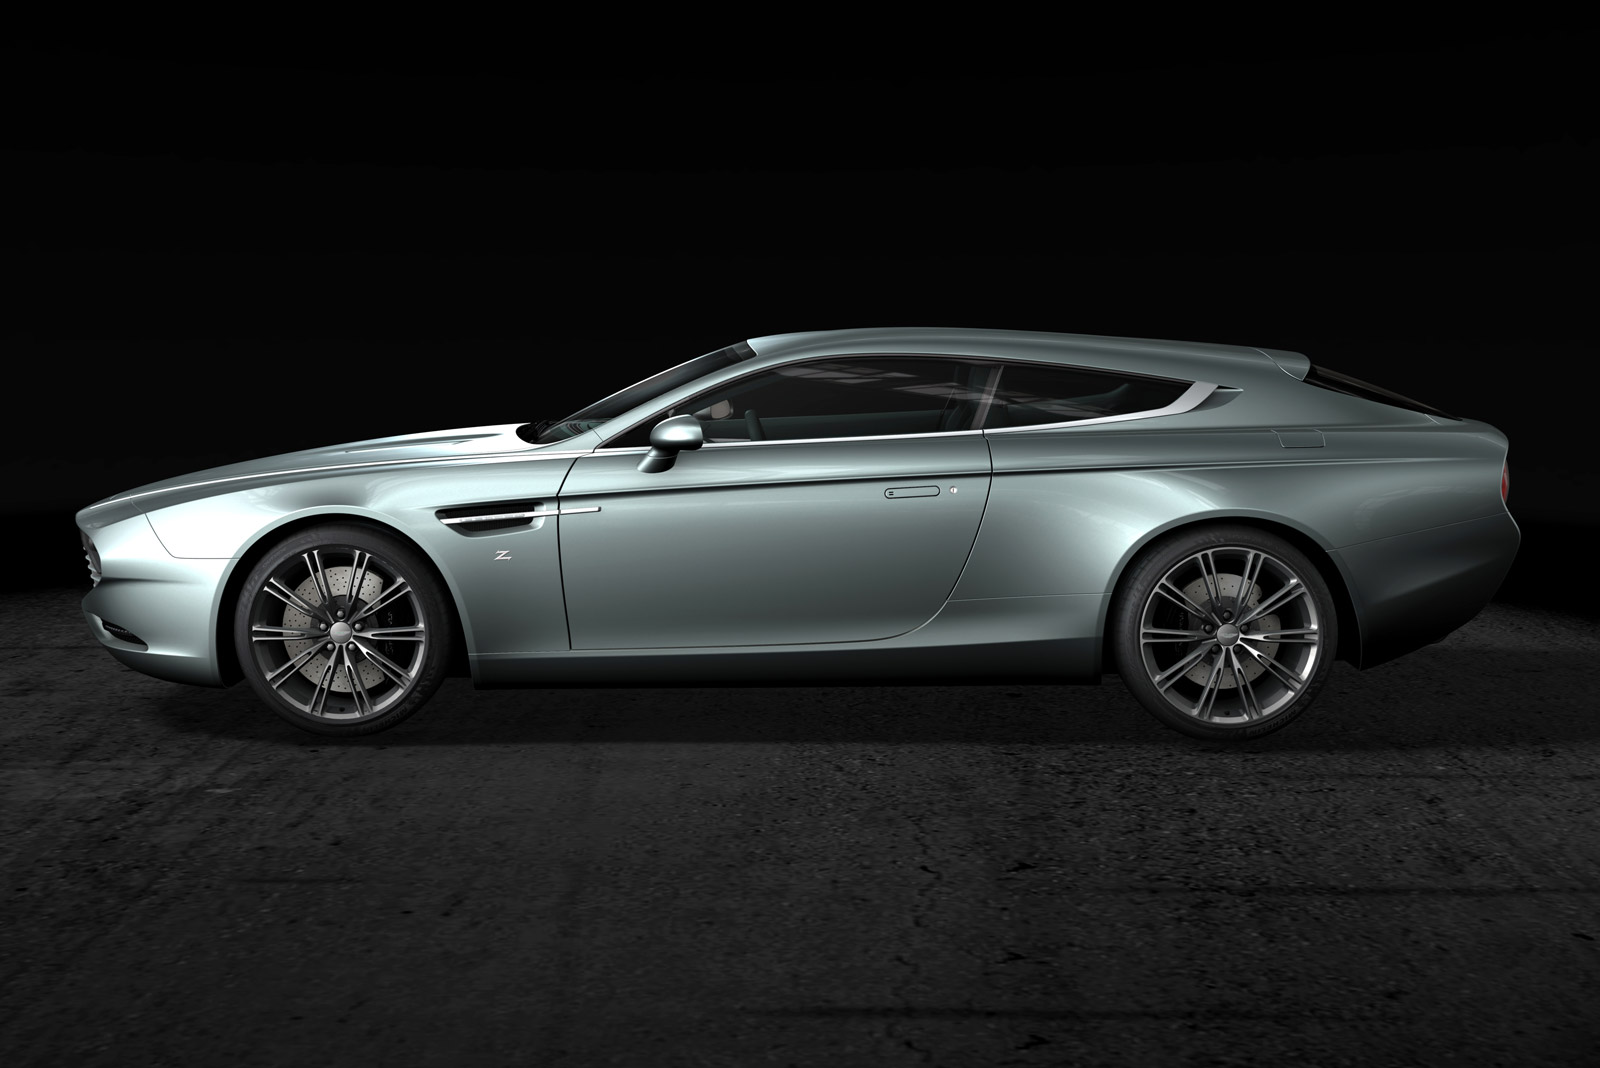 Aston Martin Virage News Breaking News Photos Videos - Aston martin news